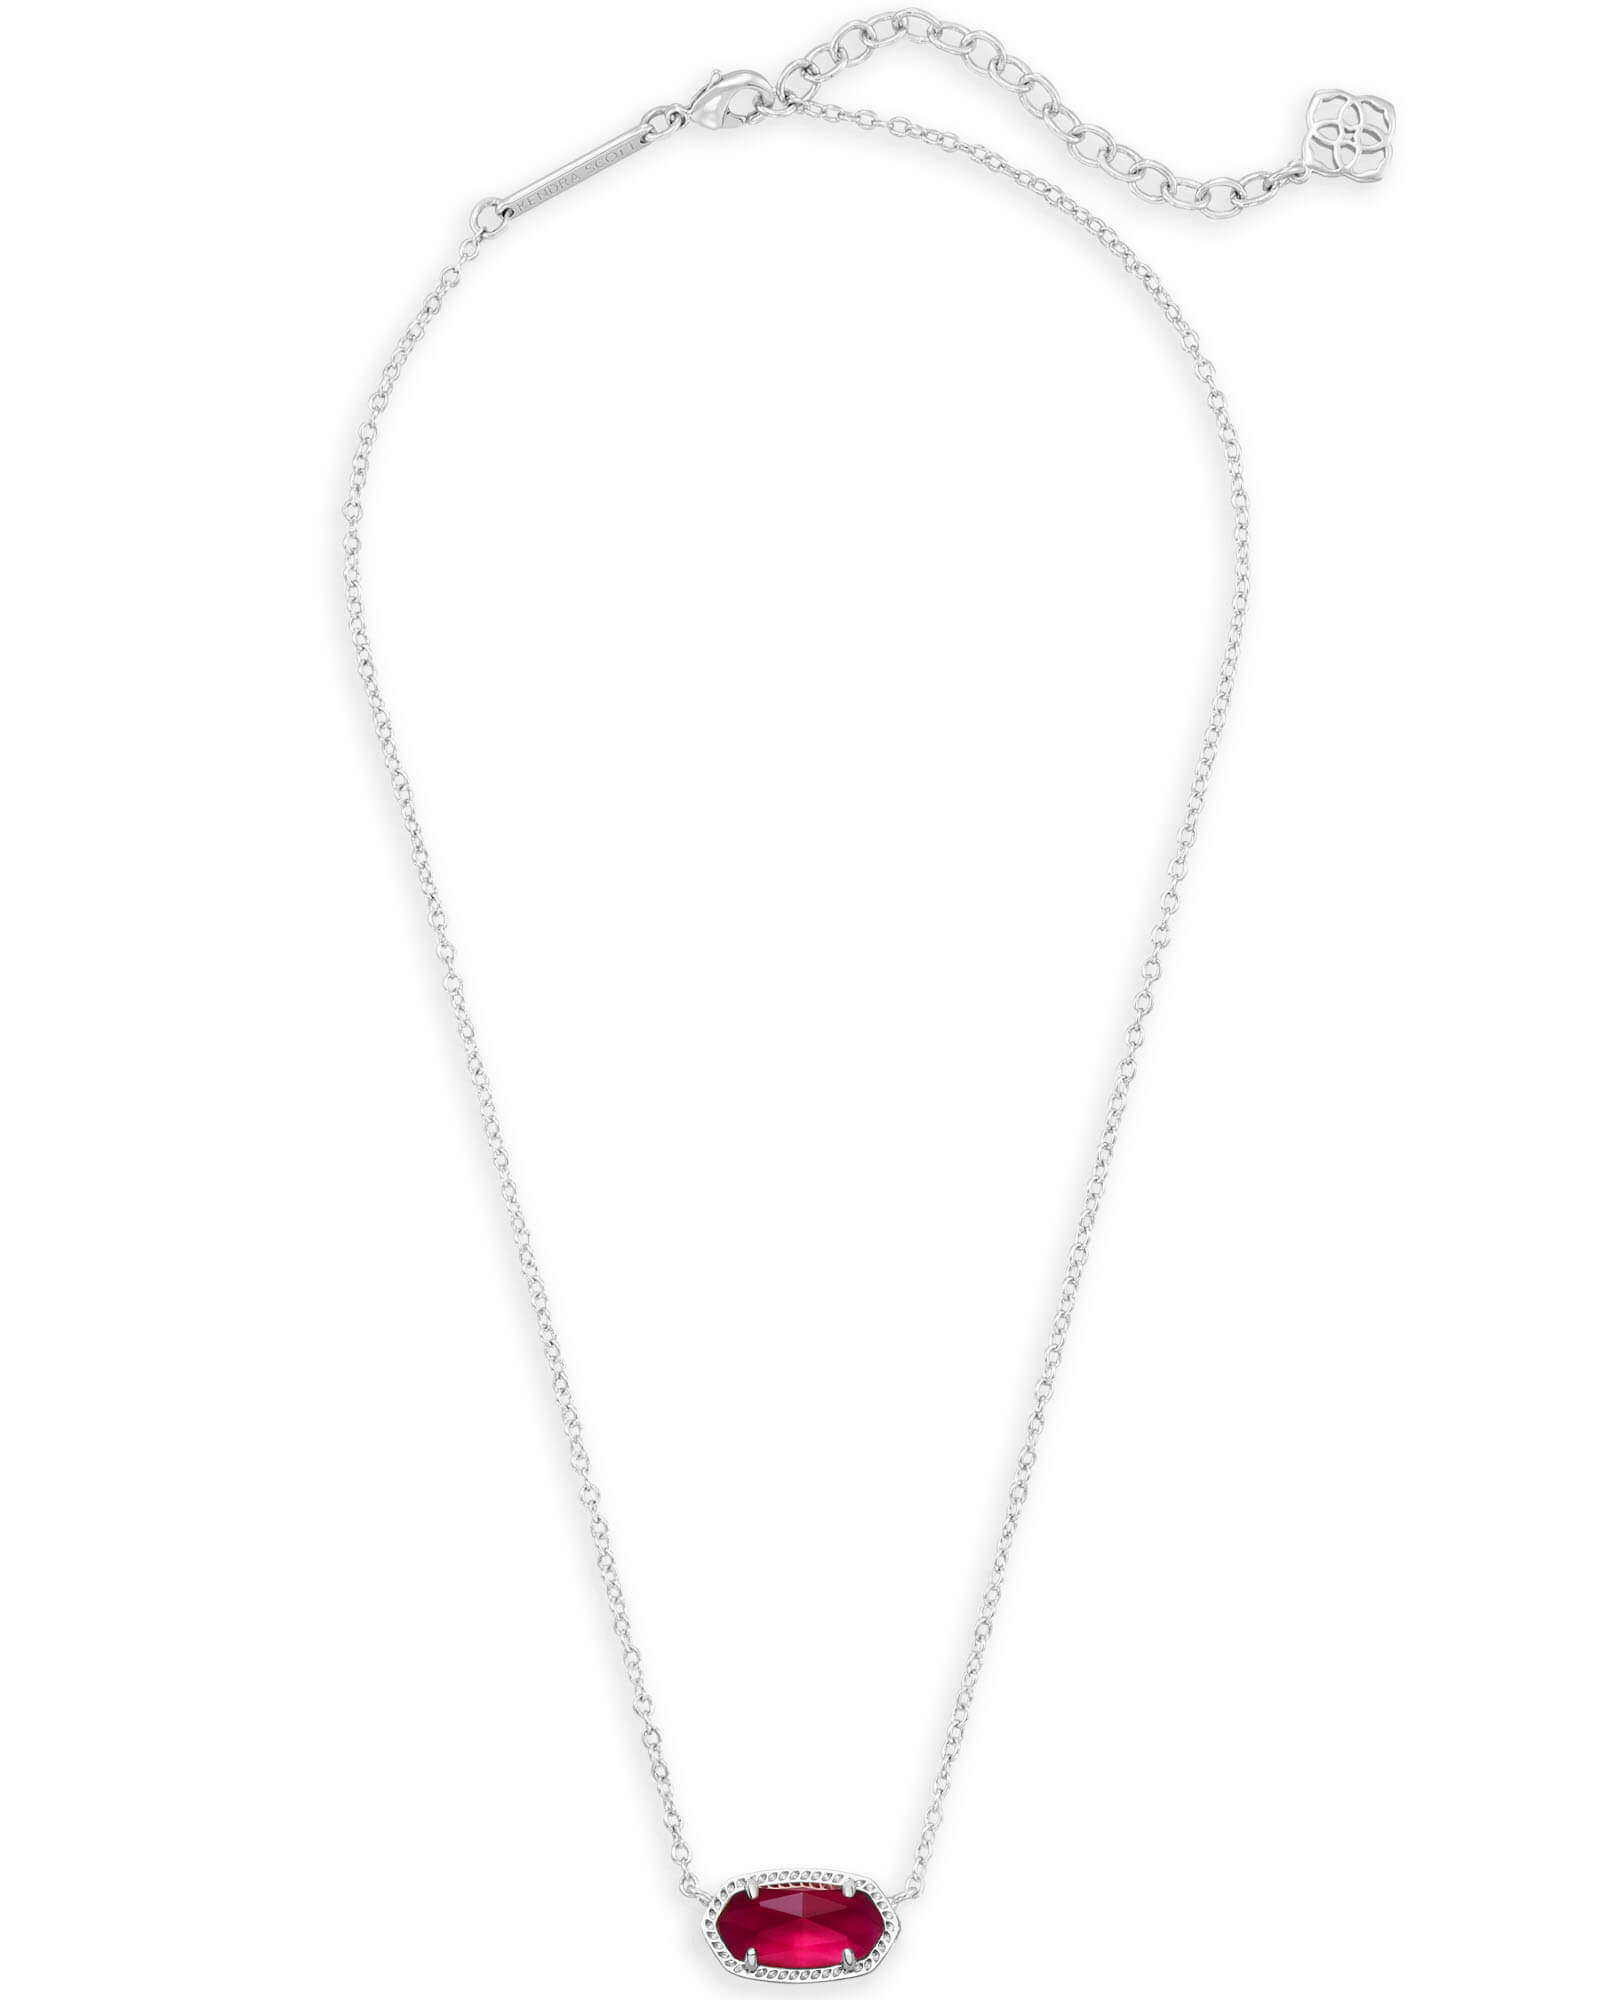 Elisa Silver Pendant Necklace in Berry Illusion